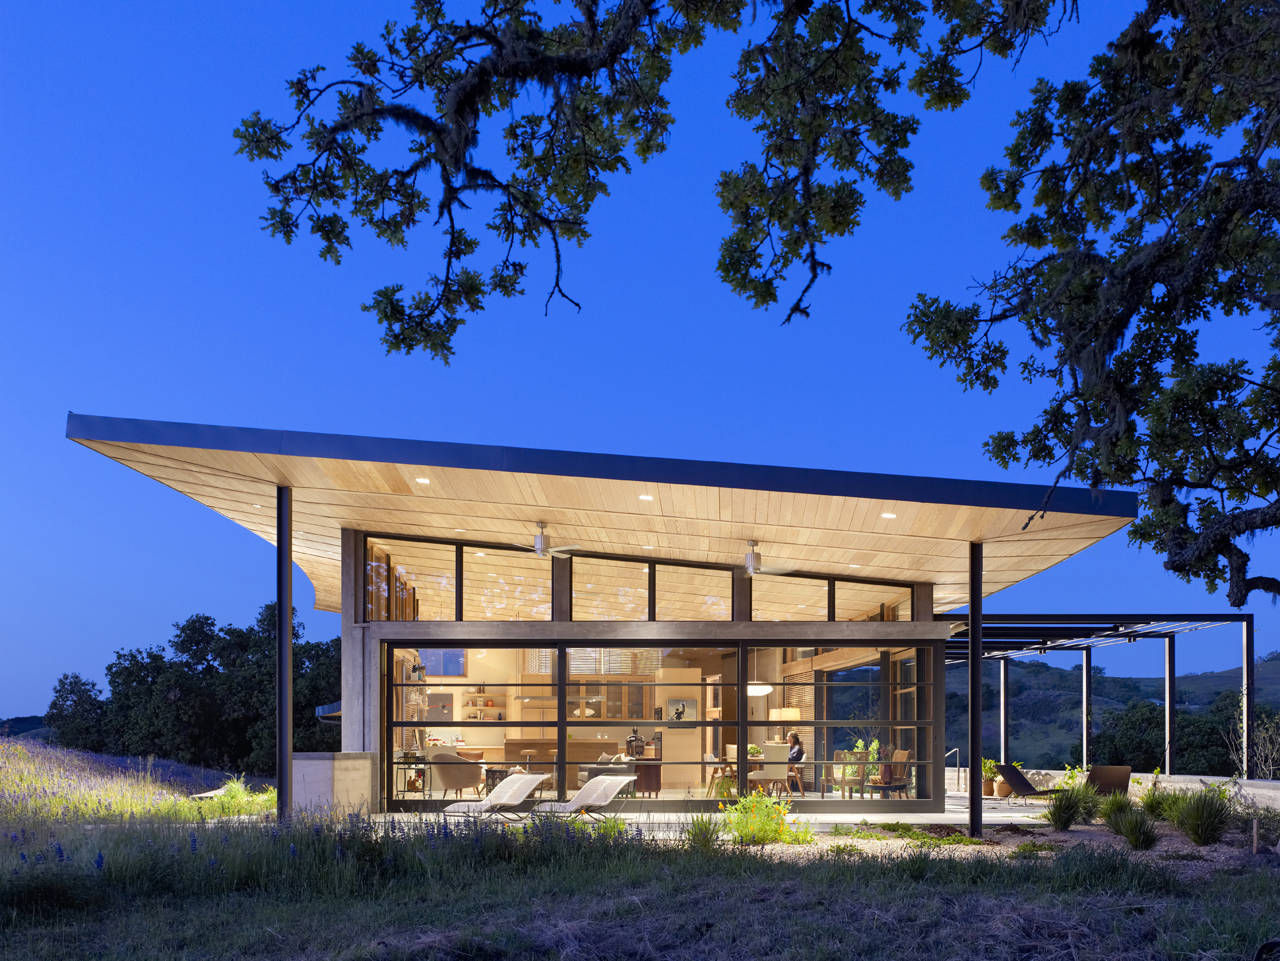 Caterpillar house in carmel california by feldman for Modern looking homes